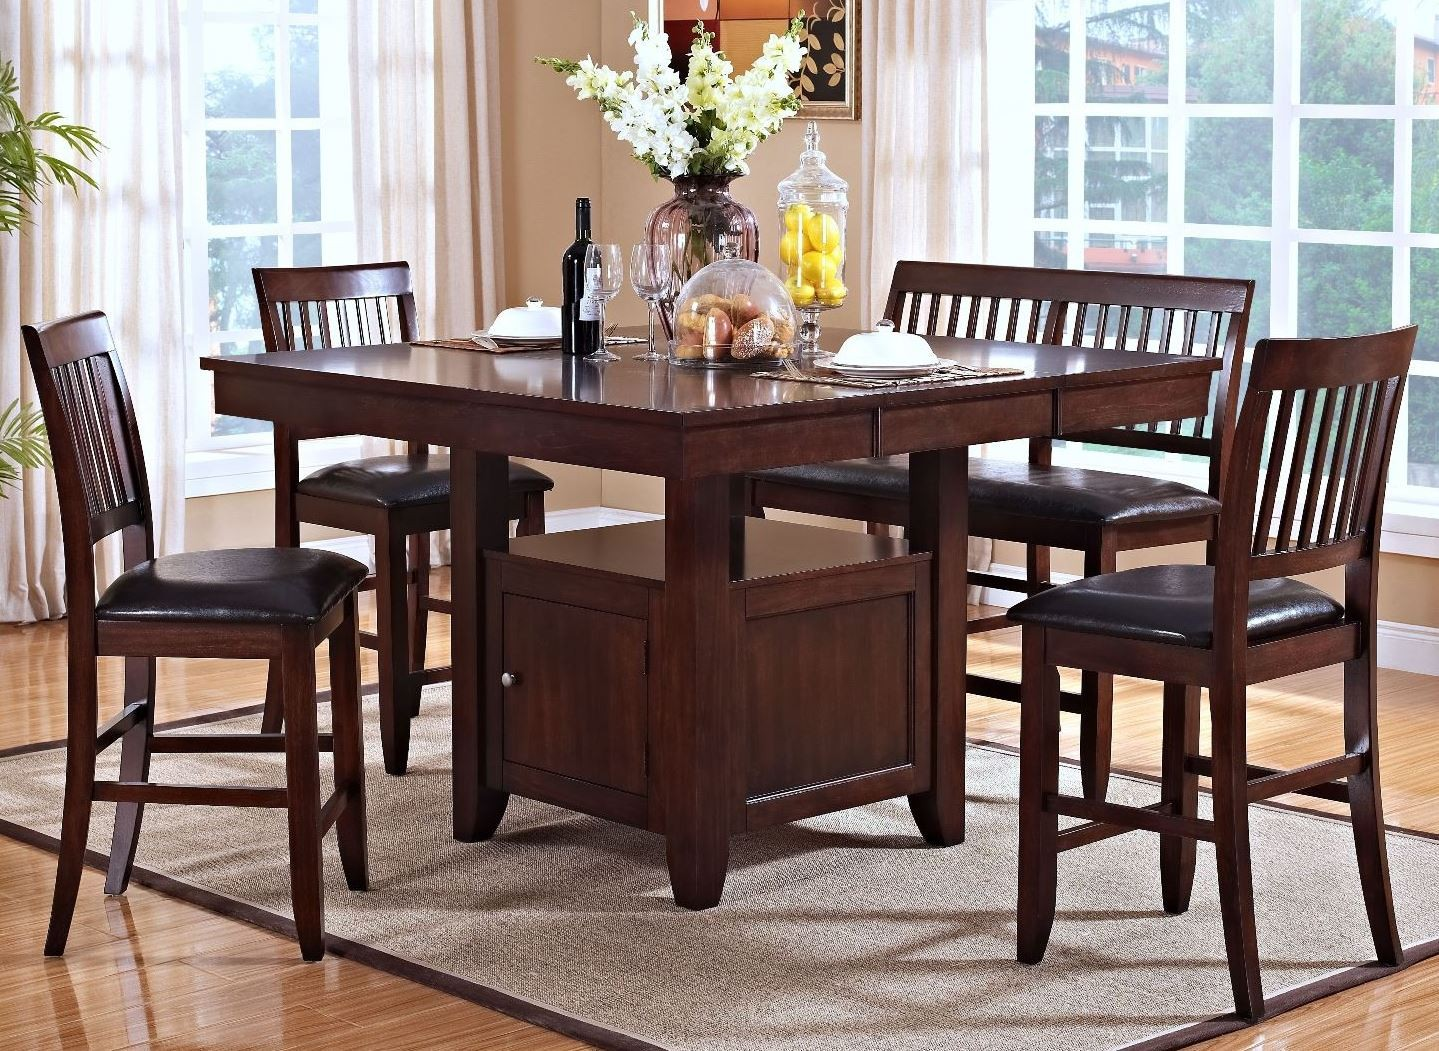 Kaylee tudor counter height storage dining room set from new classics 45 101 10 10b coleman - Dining room sets with storage ...